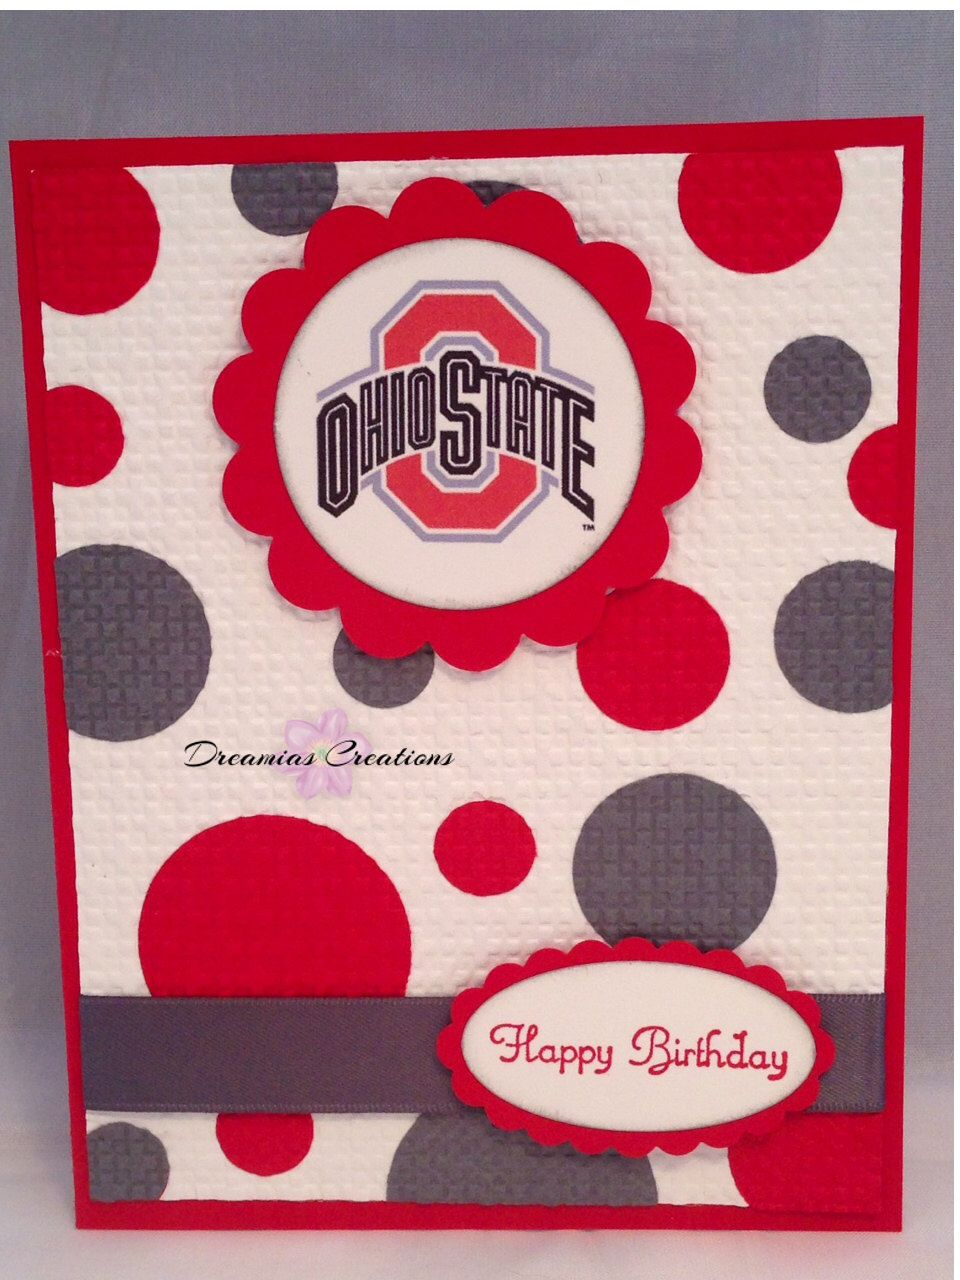 ohio state birthday card ; 4ed3e0068d474b4a3efb8d4b8b627045